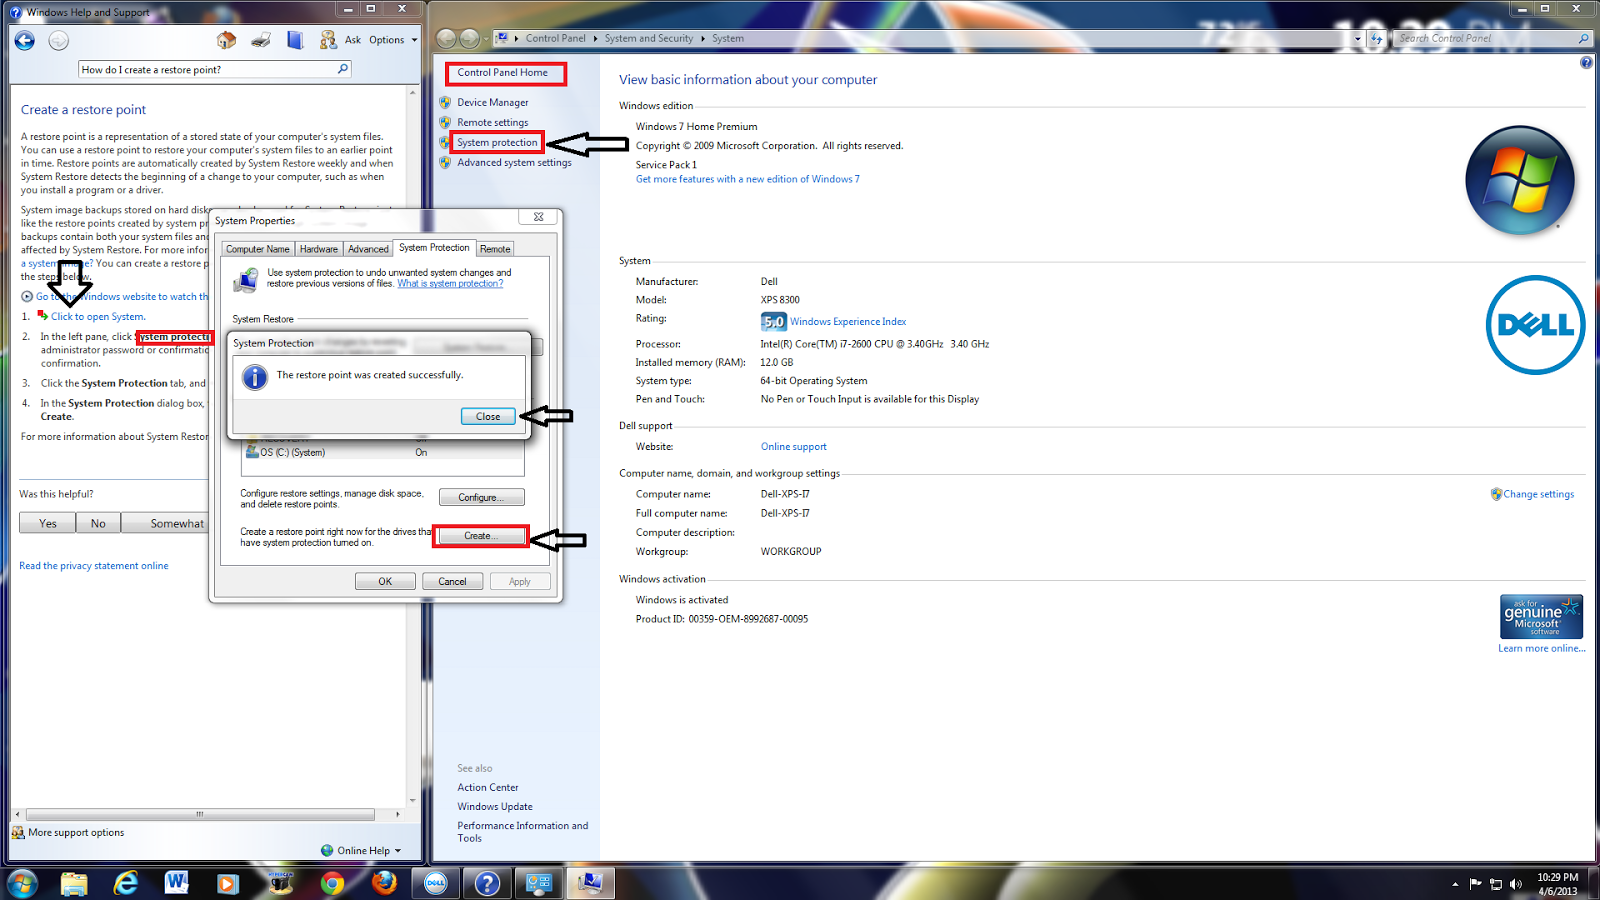 how to create more system restore points